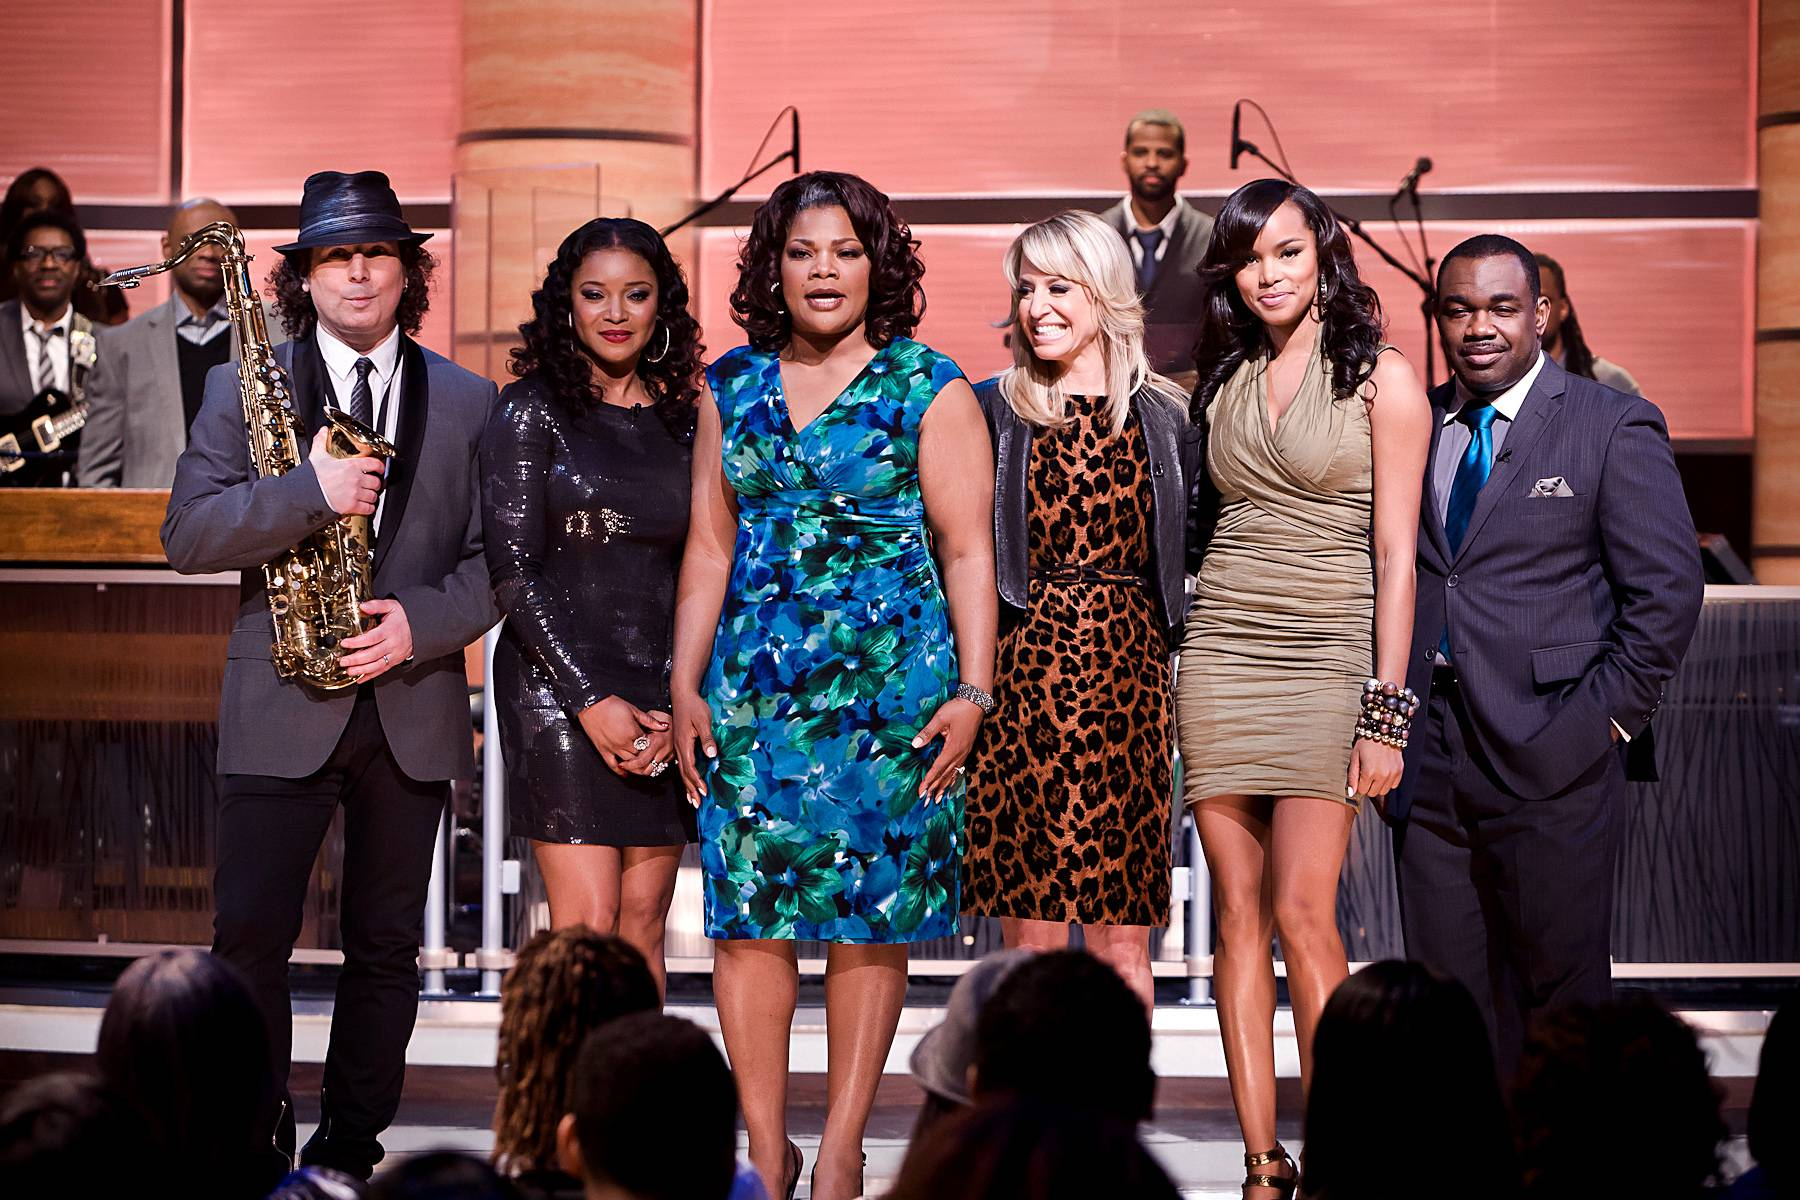 Farewell to Another Great Episode! - From left: Boney James, Tamala Jones, Mo'Nique, Dr. Laura Berman, LeToya Luckett, and Rodney Perry.(Photo: Darnell Williams/BET)